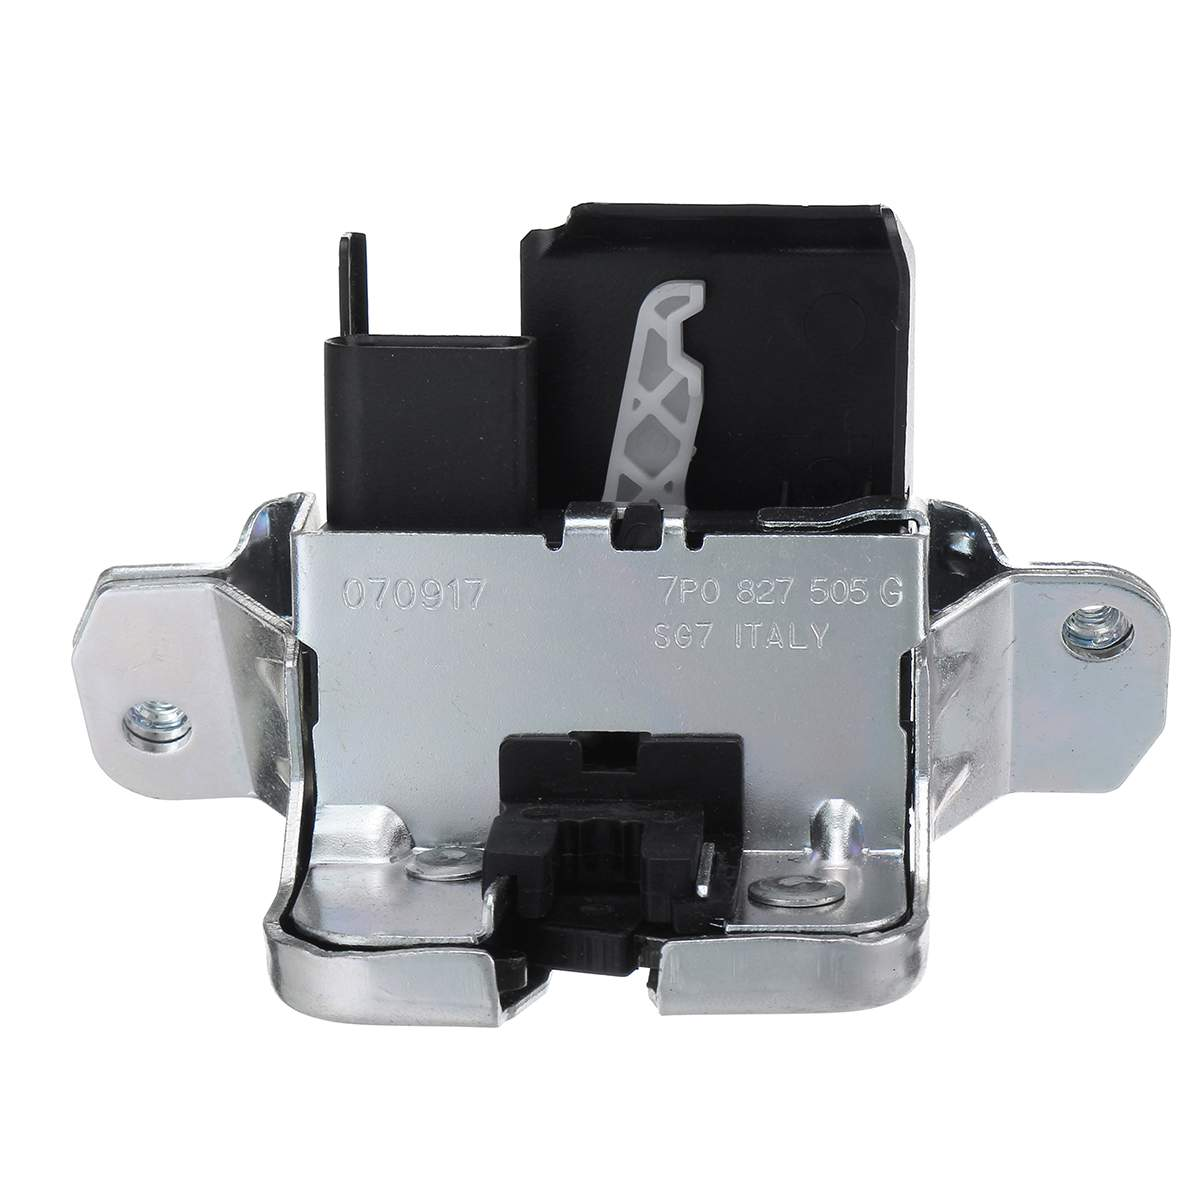 #7P0827505G Rear Trunk Door <font><b>Lock</b></font> switch For VW/Touareg/<font><b>Sharan</b></font> for Seat Alhambra 2010 2011 2012 2013 2014 2015 2016 2017 2018 19 image